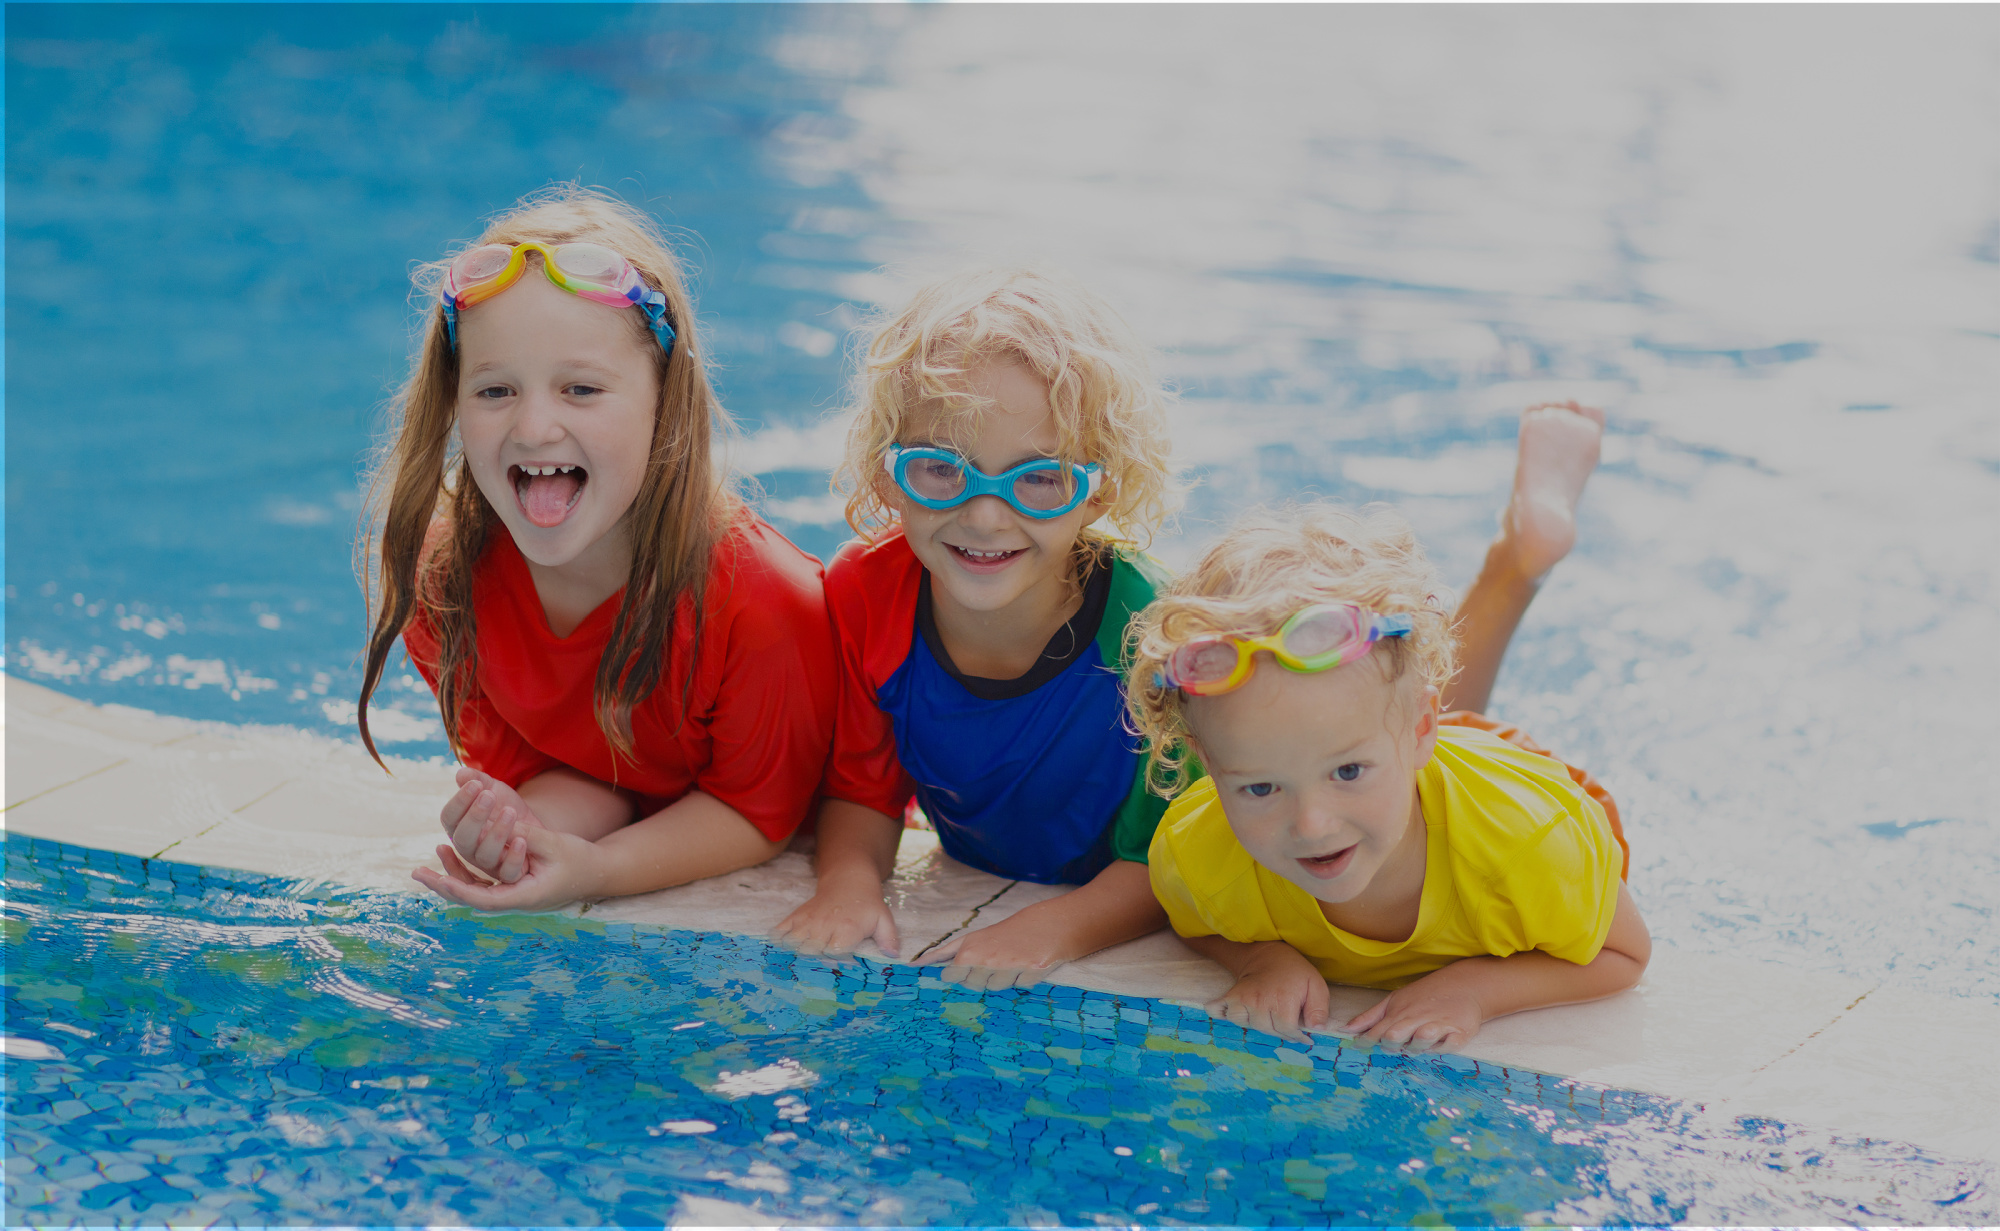 Pool Safety and Children